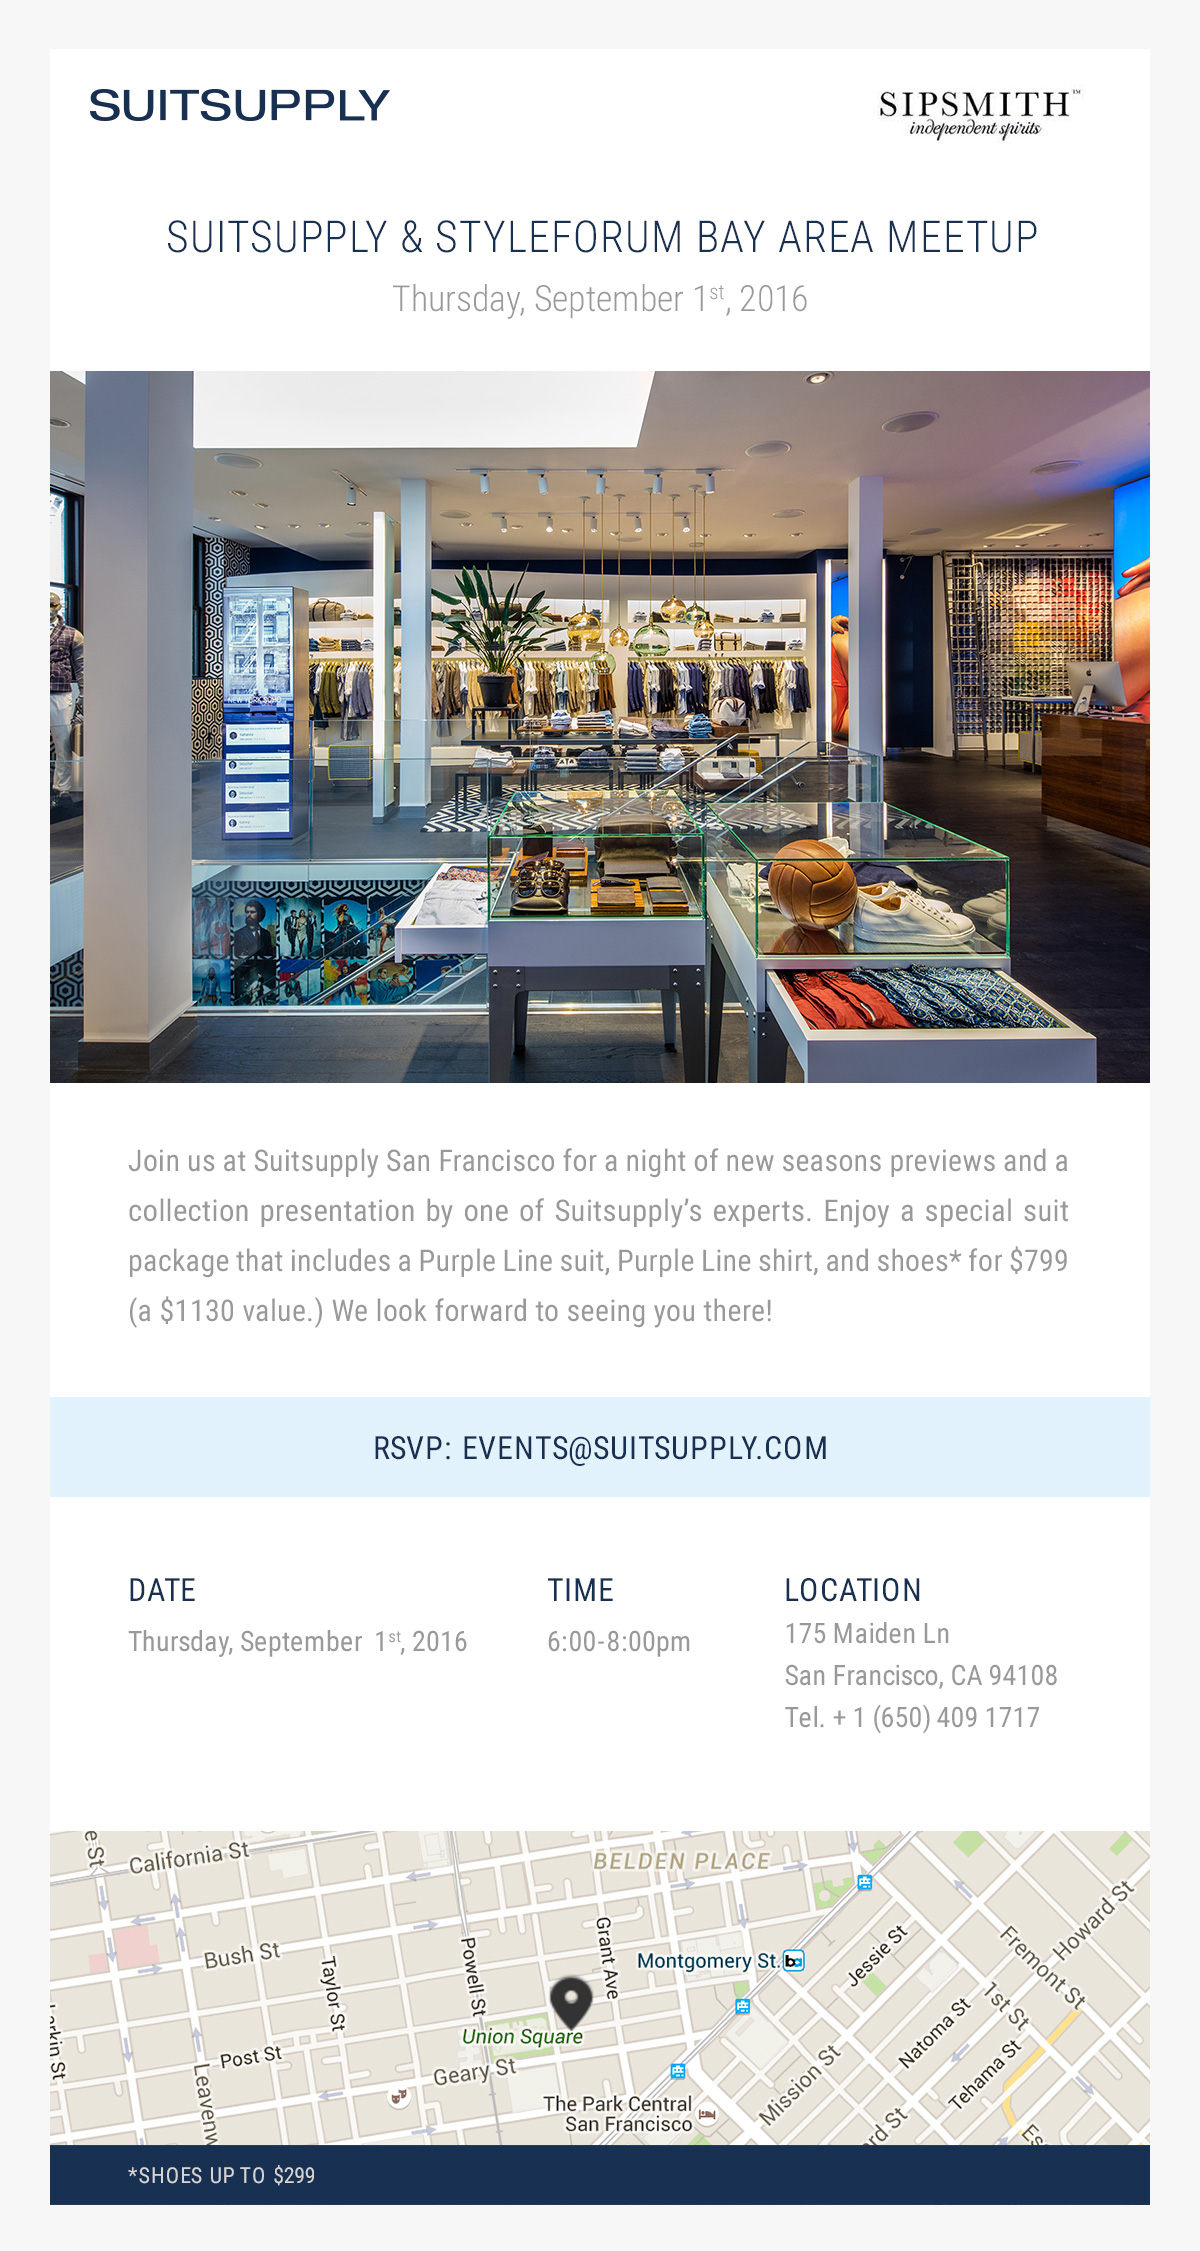 GusW's photos in SUITSUPPLY X STYLEFORUM MEETUP THURSDAY SEPT 1ST,  SAN FRANCISCO, NEW MEMBERS AND GUESTS WELCOME